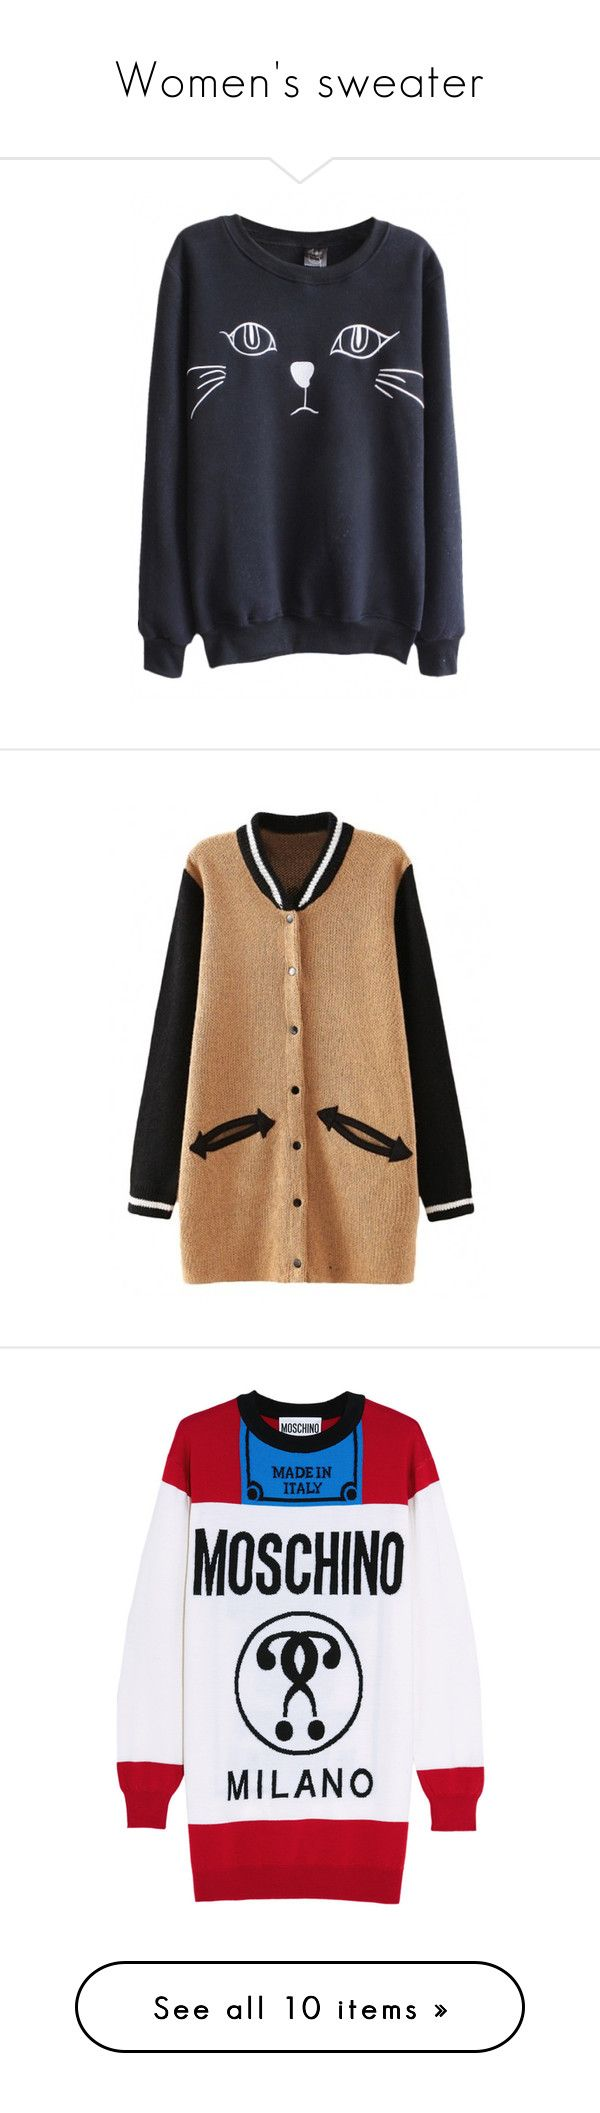 """""""Women's sweater"""" by xfrodo ❤ liked on Polyvore featuring tops, hoodies, sweatshirts, sweaters, shirts, shirt top, cardigans, outerwear, jackets and beige cardigan"""